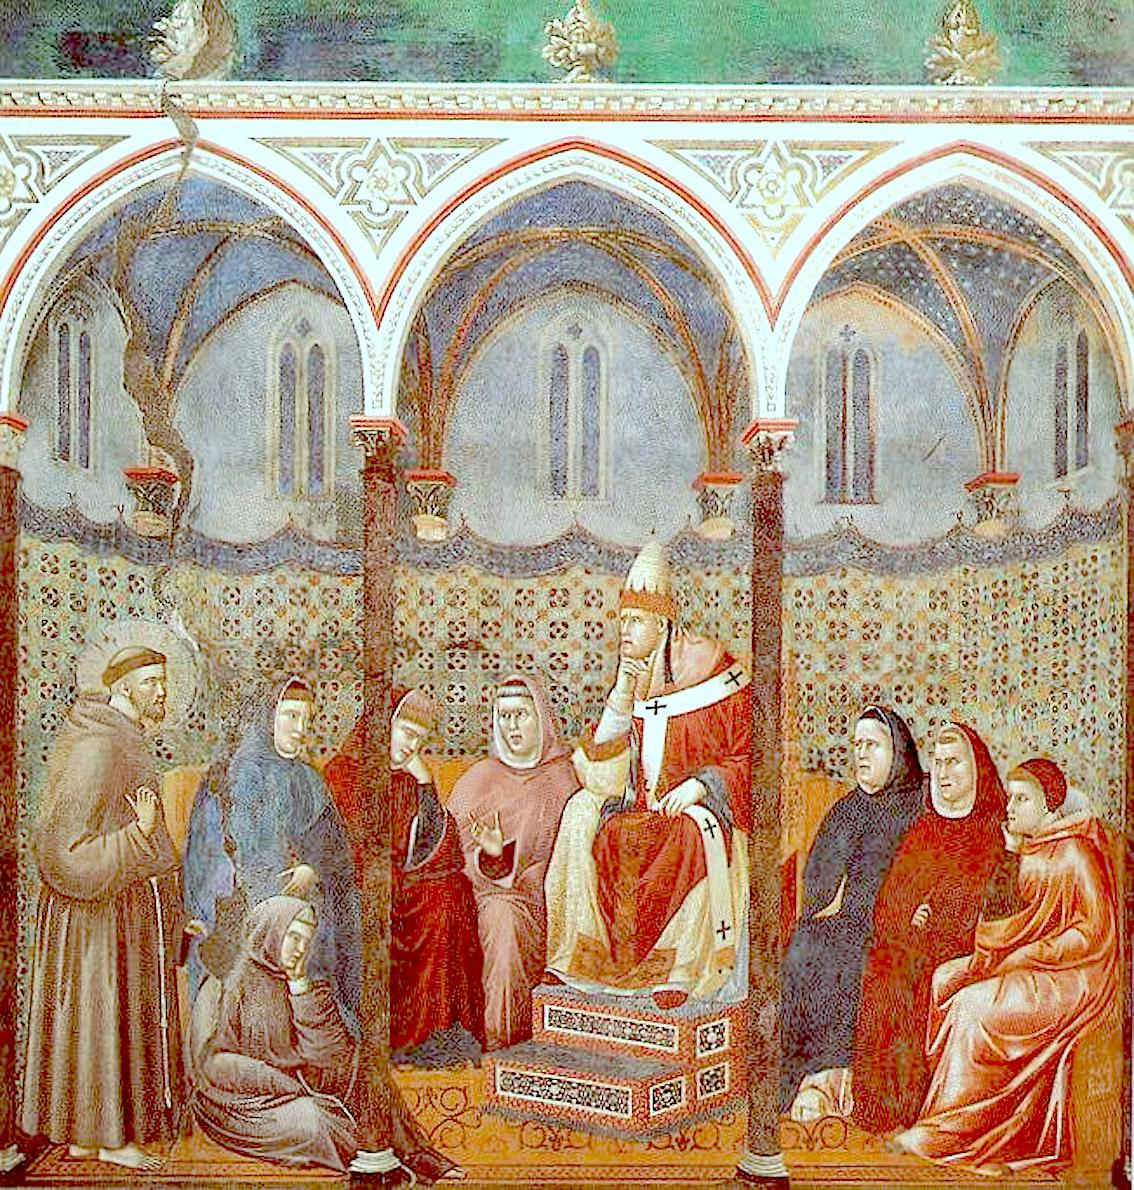 Saint Francis preaching before Pope Honorius III. Fresco of Giotto in the Superior Basilica of Assisi